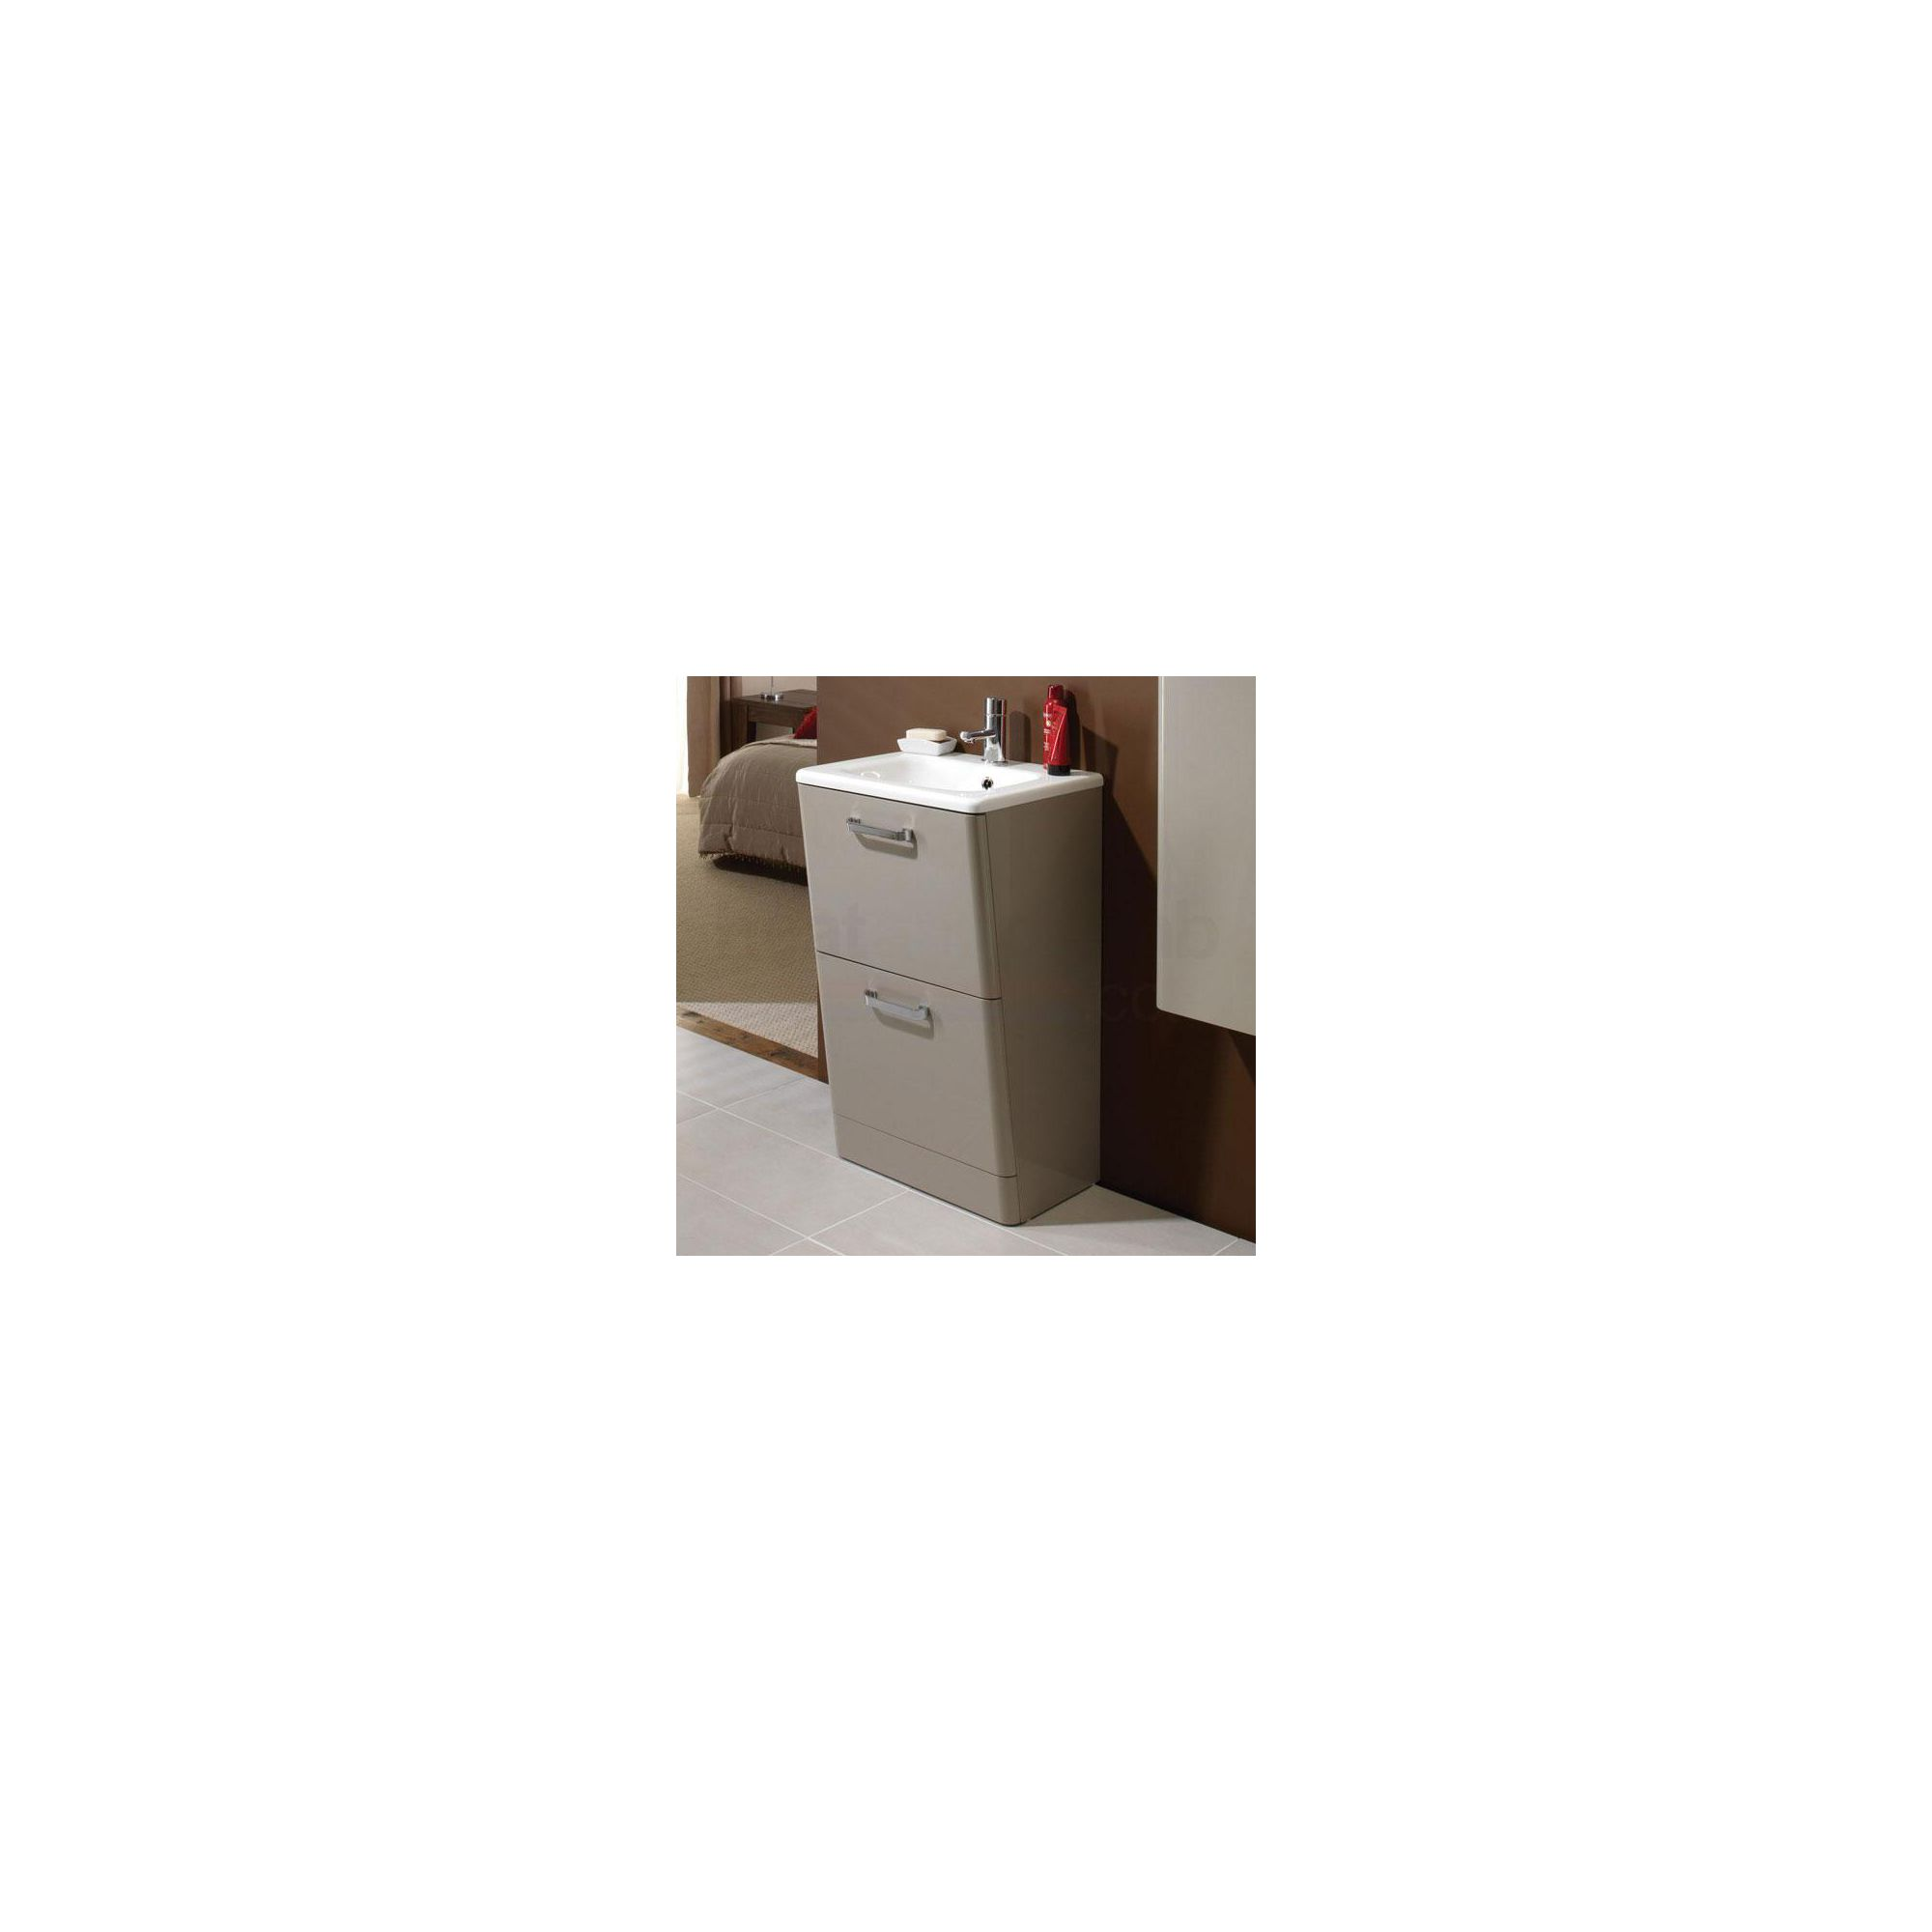 HiB Palamas Floor Standing Unit Calico 845mm High x 500mm Wide x 425mm Deep (BASIN NOT INCLUDED)